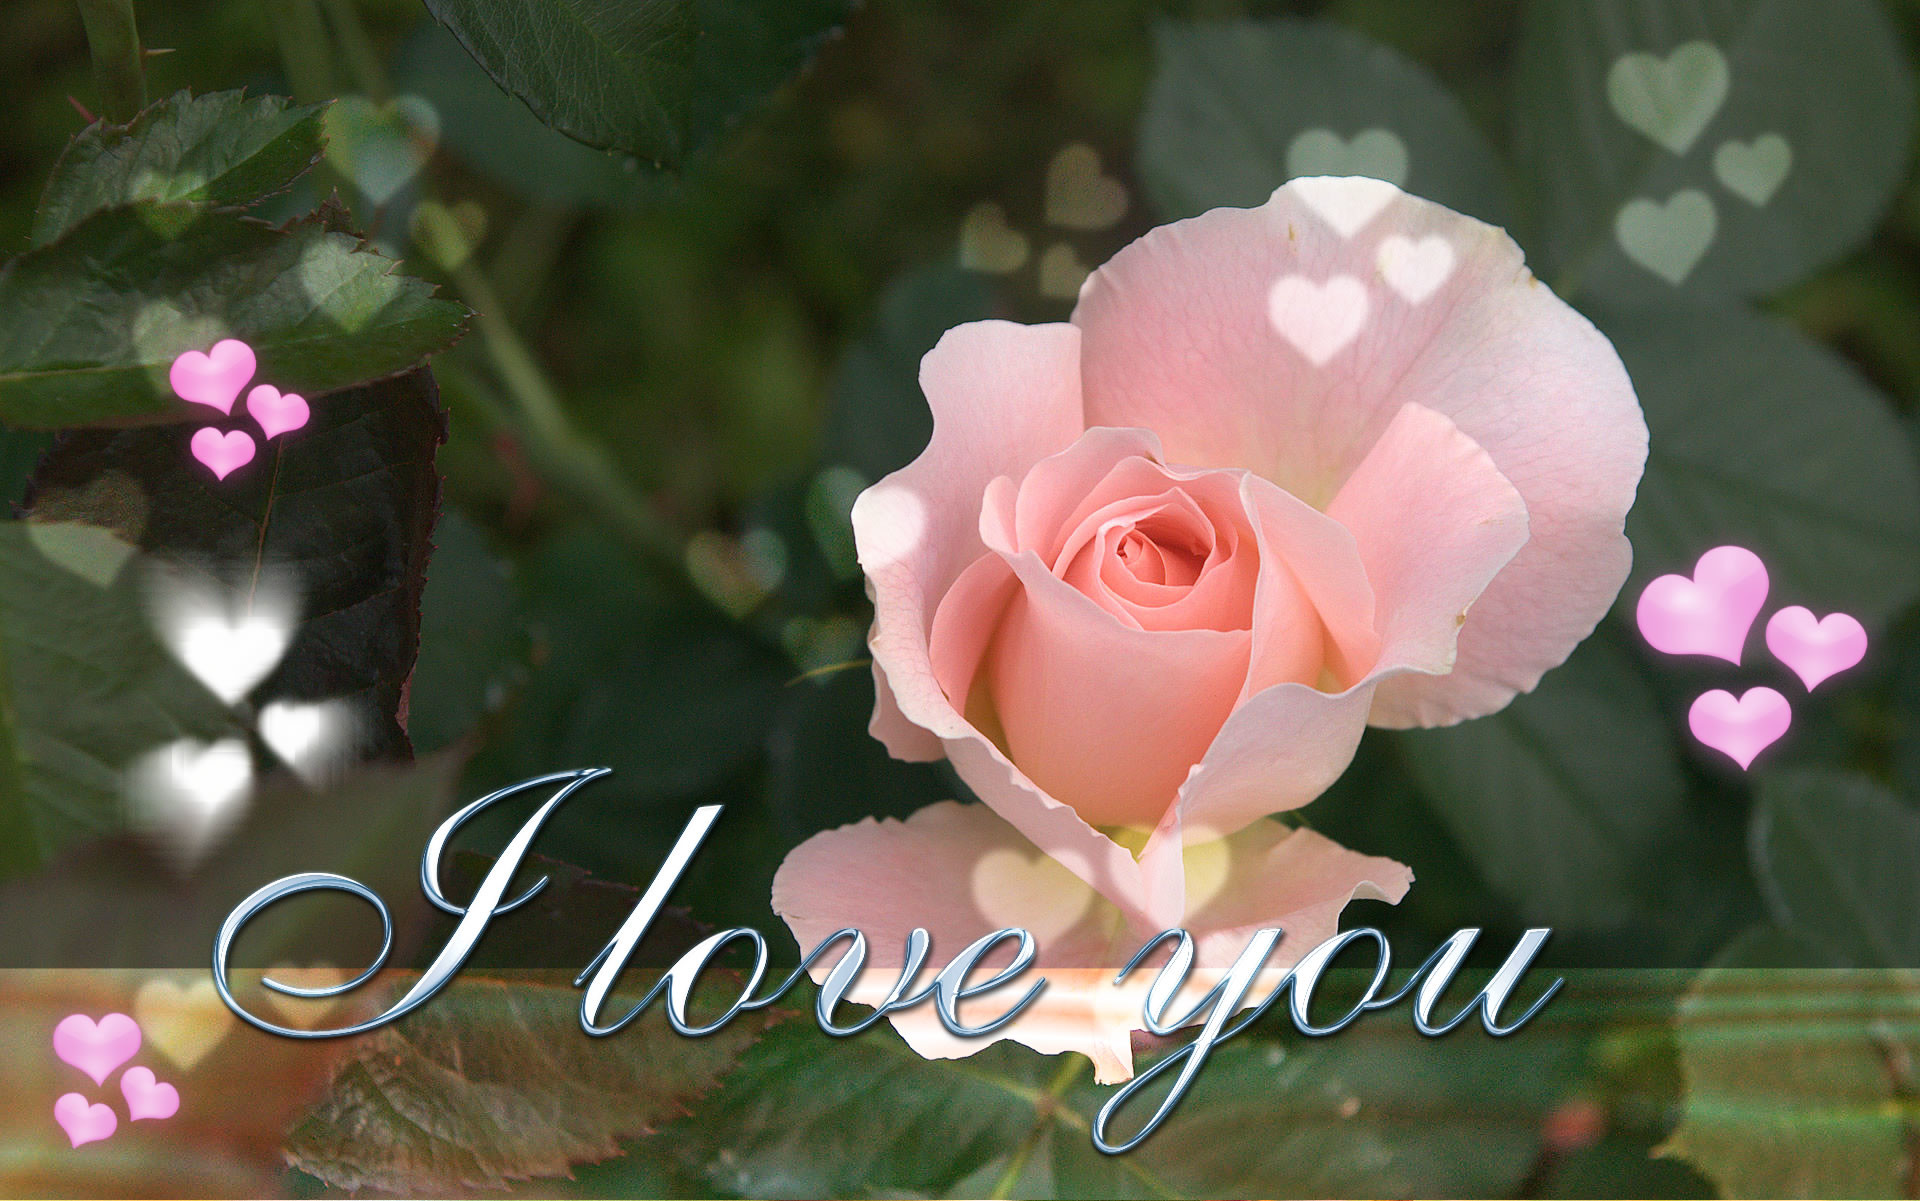 L Love You Wallpapers : L Love You Wallpaper ??